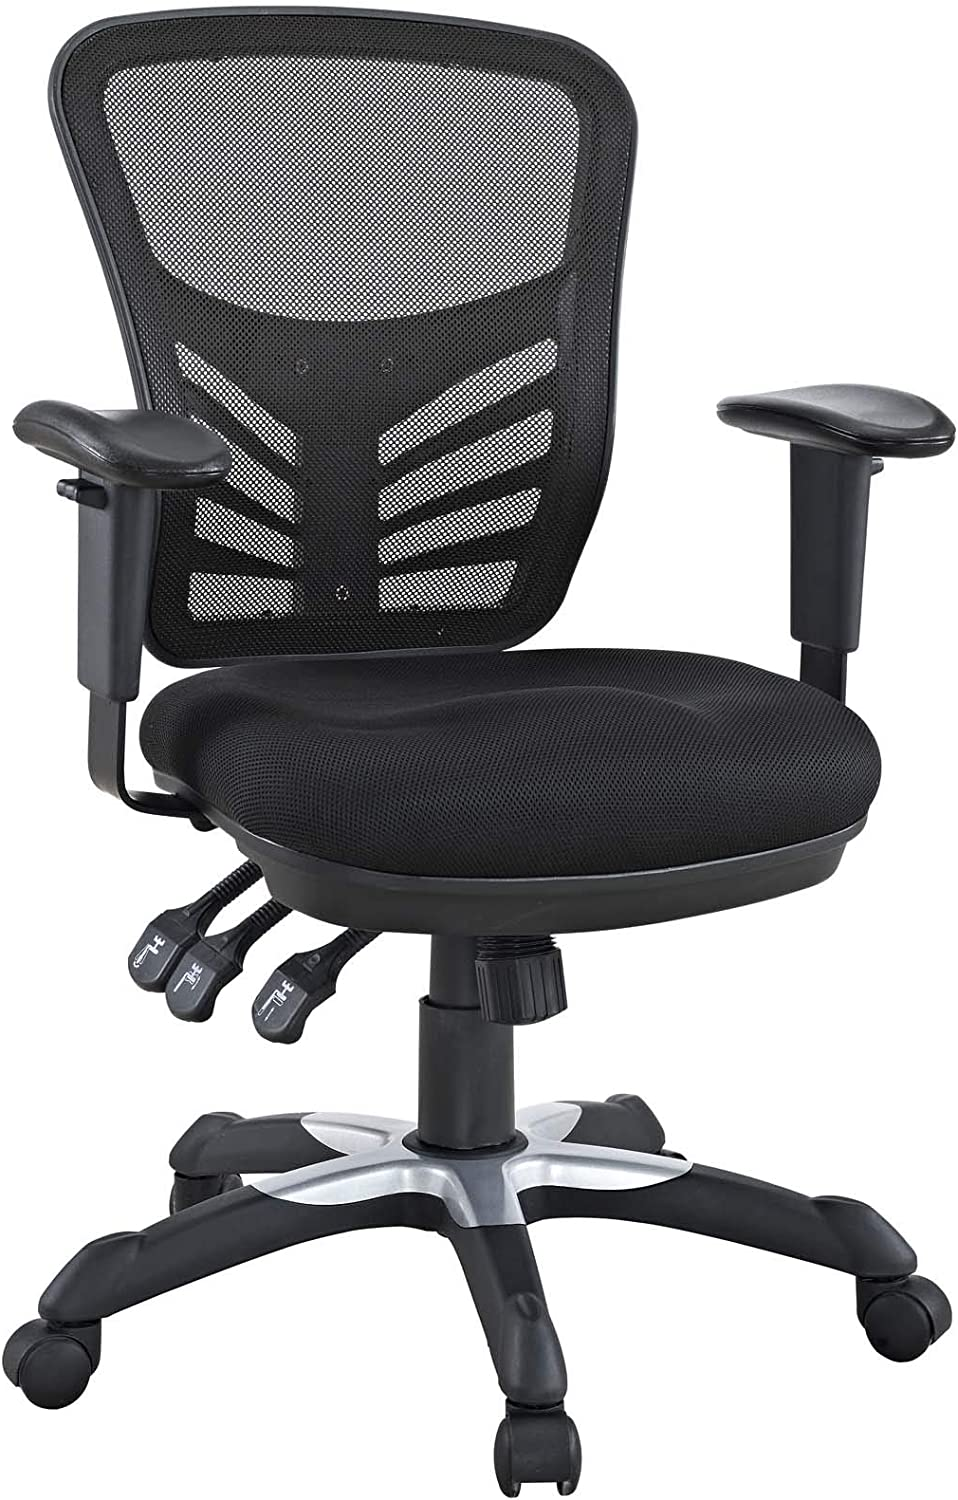 715tYiaXBtL. AC SL1500 - What is The Best Chair For Sciatica Nerve Problems? Get Relief from Sciatica Pain - ChairPicks